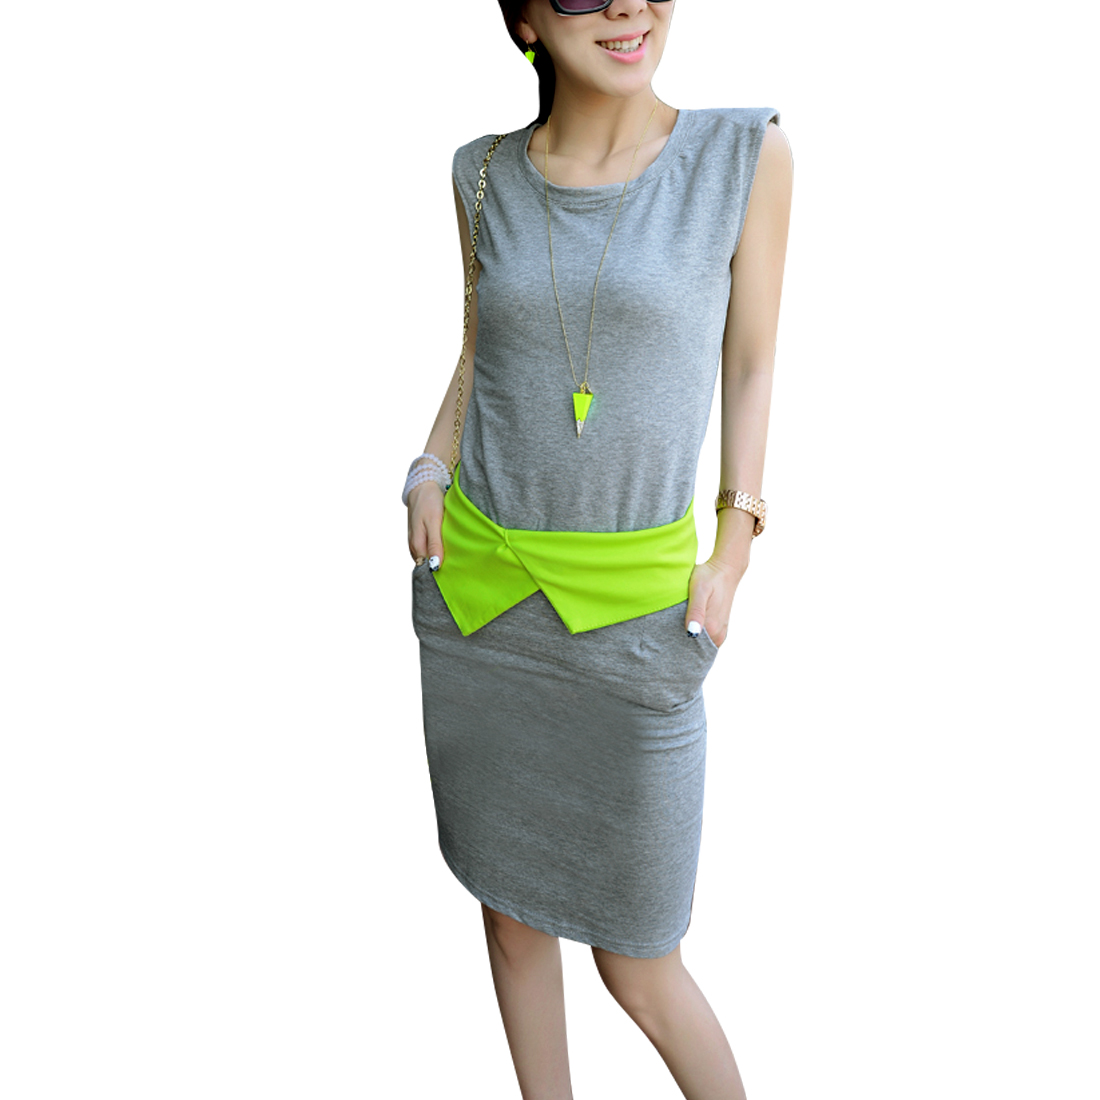 Women Round Neck Sleeveless Tank Top w Slim Fit Slant Pockets Skirt Grey XS